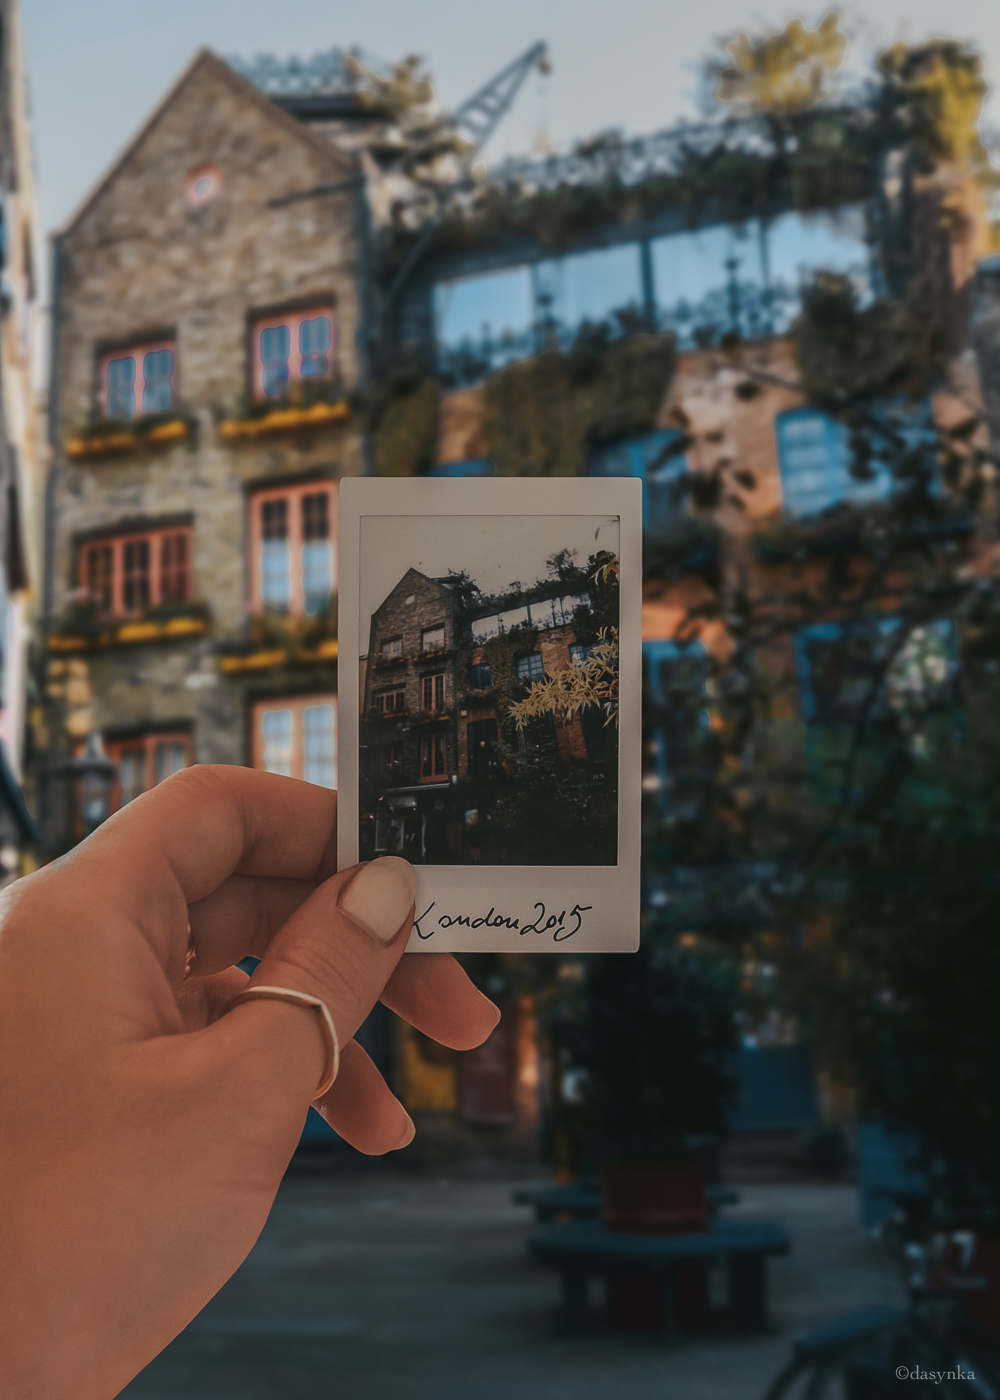 dasynka-fashion-blog-blogger-influencer-inspiration-shooting-globettrotter-travel-traveller-instagram-lifestyle-italy-ideas-italian-polaroids-polaroid-fujifilm-instax-90-8-worldmap-planisfero-mappa-mondo-pin-memories-photographs-vintage-print-london-coven-garden-neal-s-yard-17